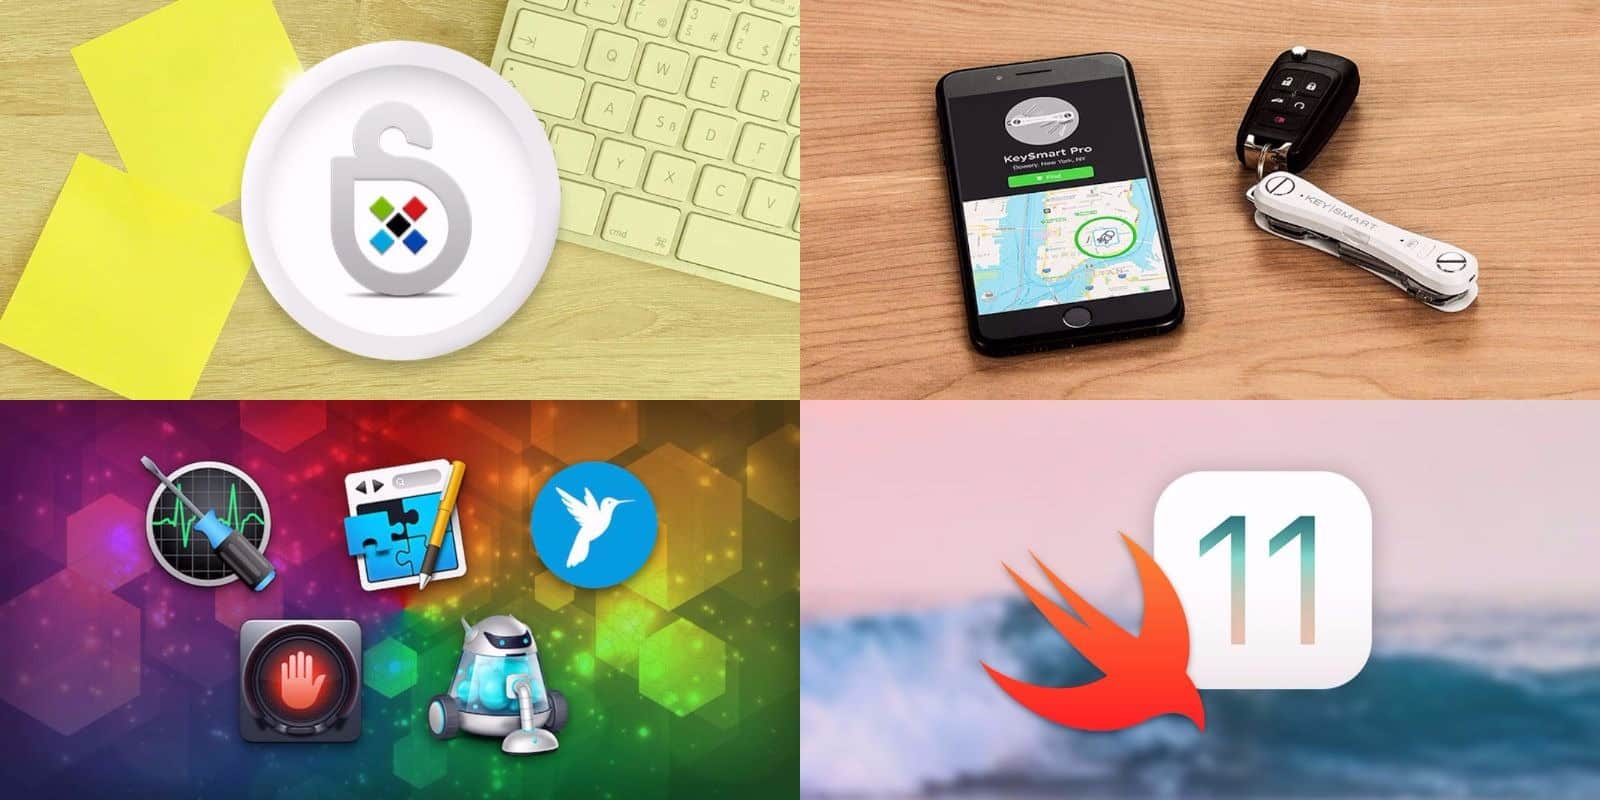 This week's best deals include a 21st century key keeper, top shelf apps, and more.